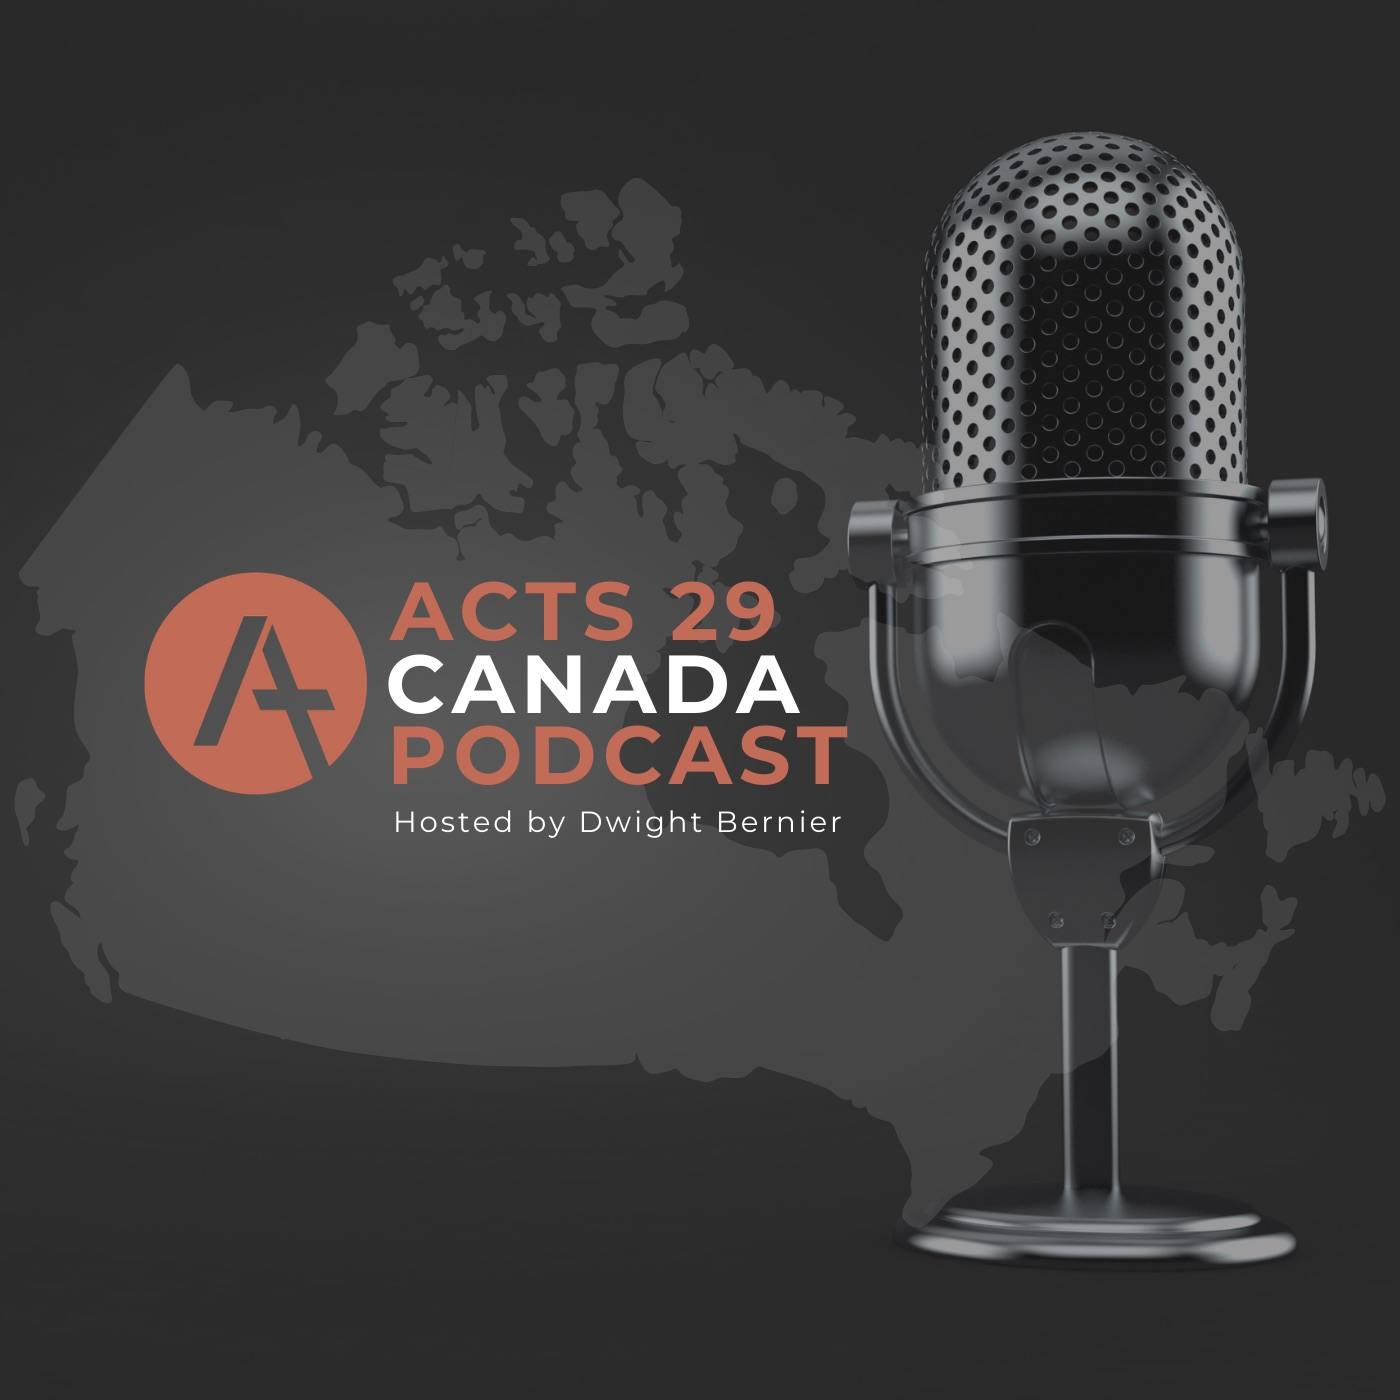 Podcast Episode 1: Welcome to the Acts 29 Canada Podcast